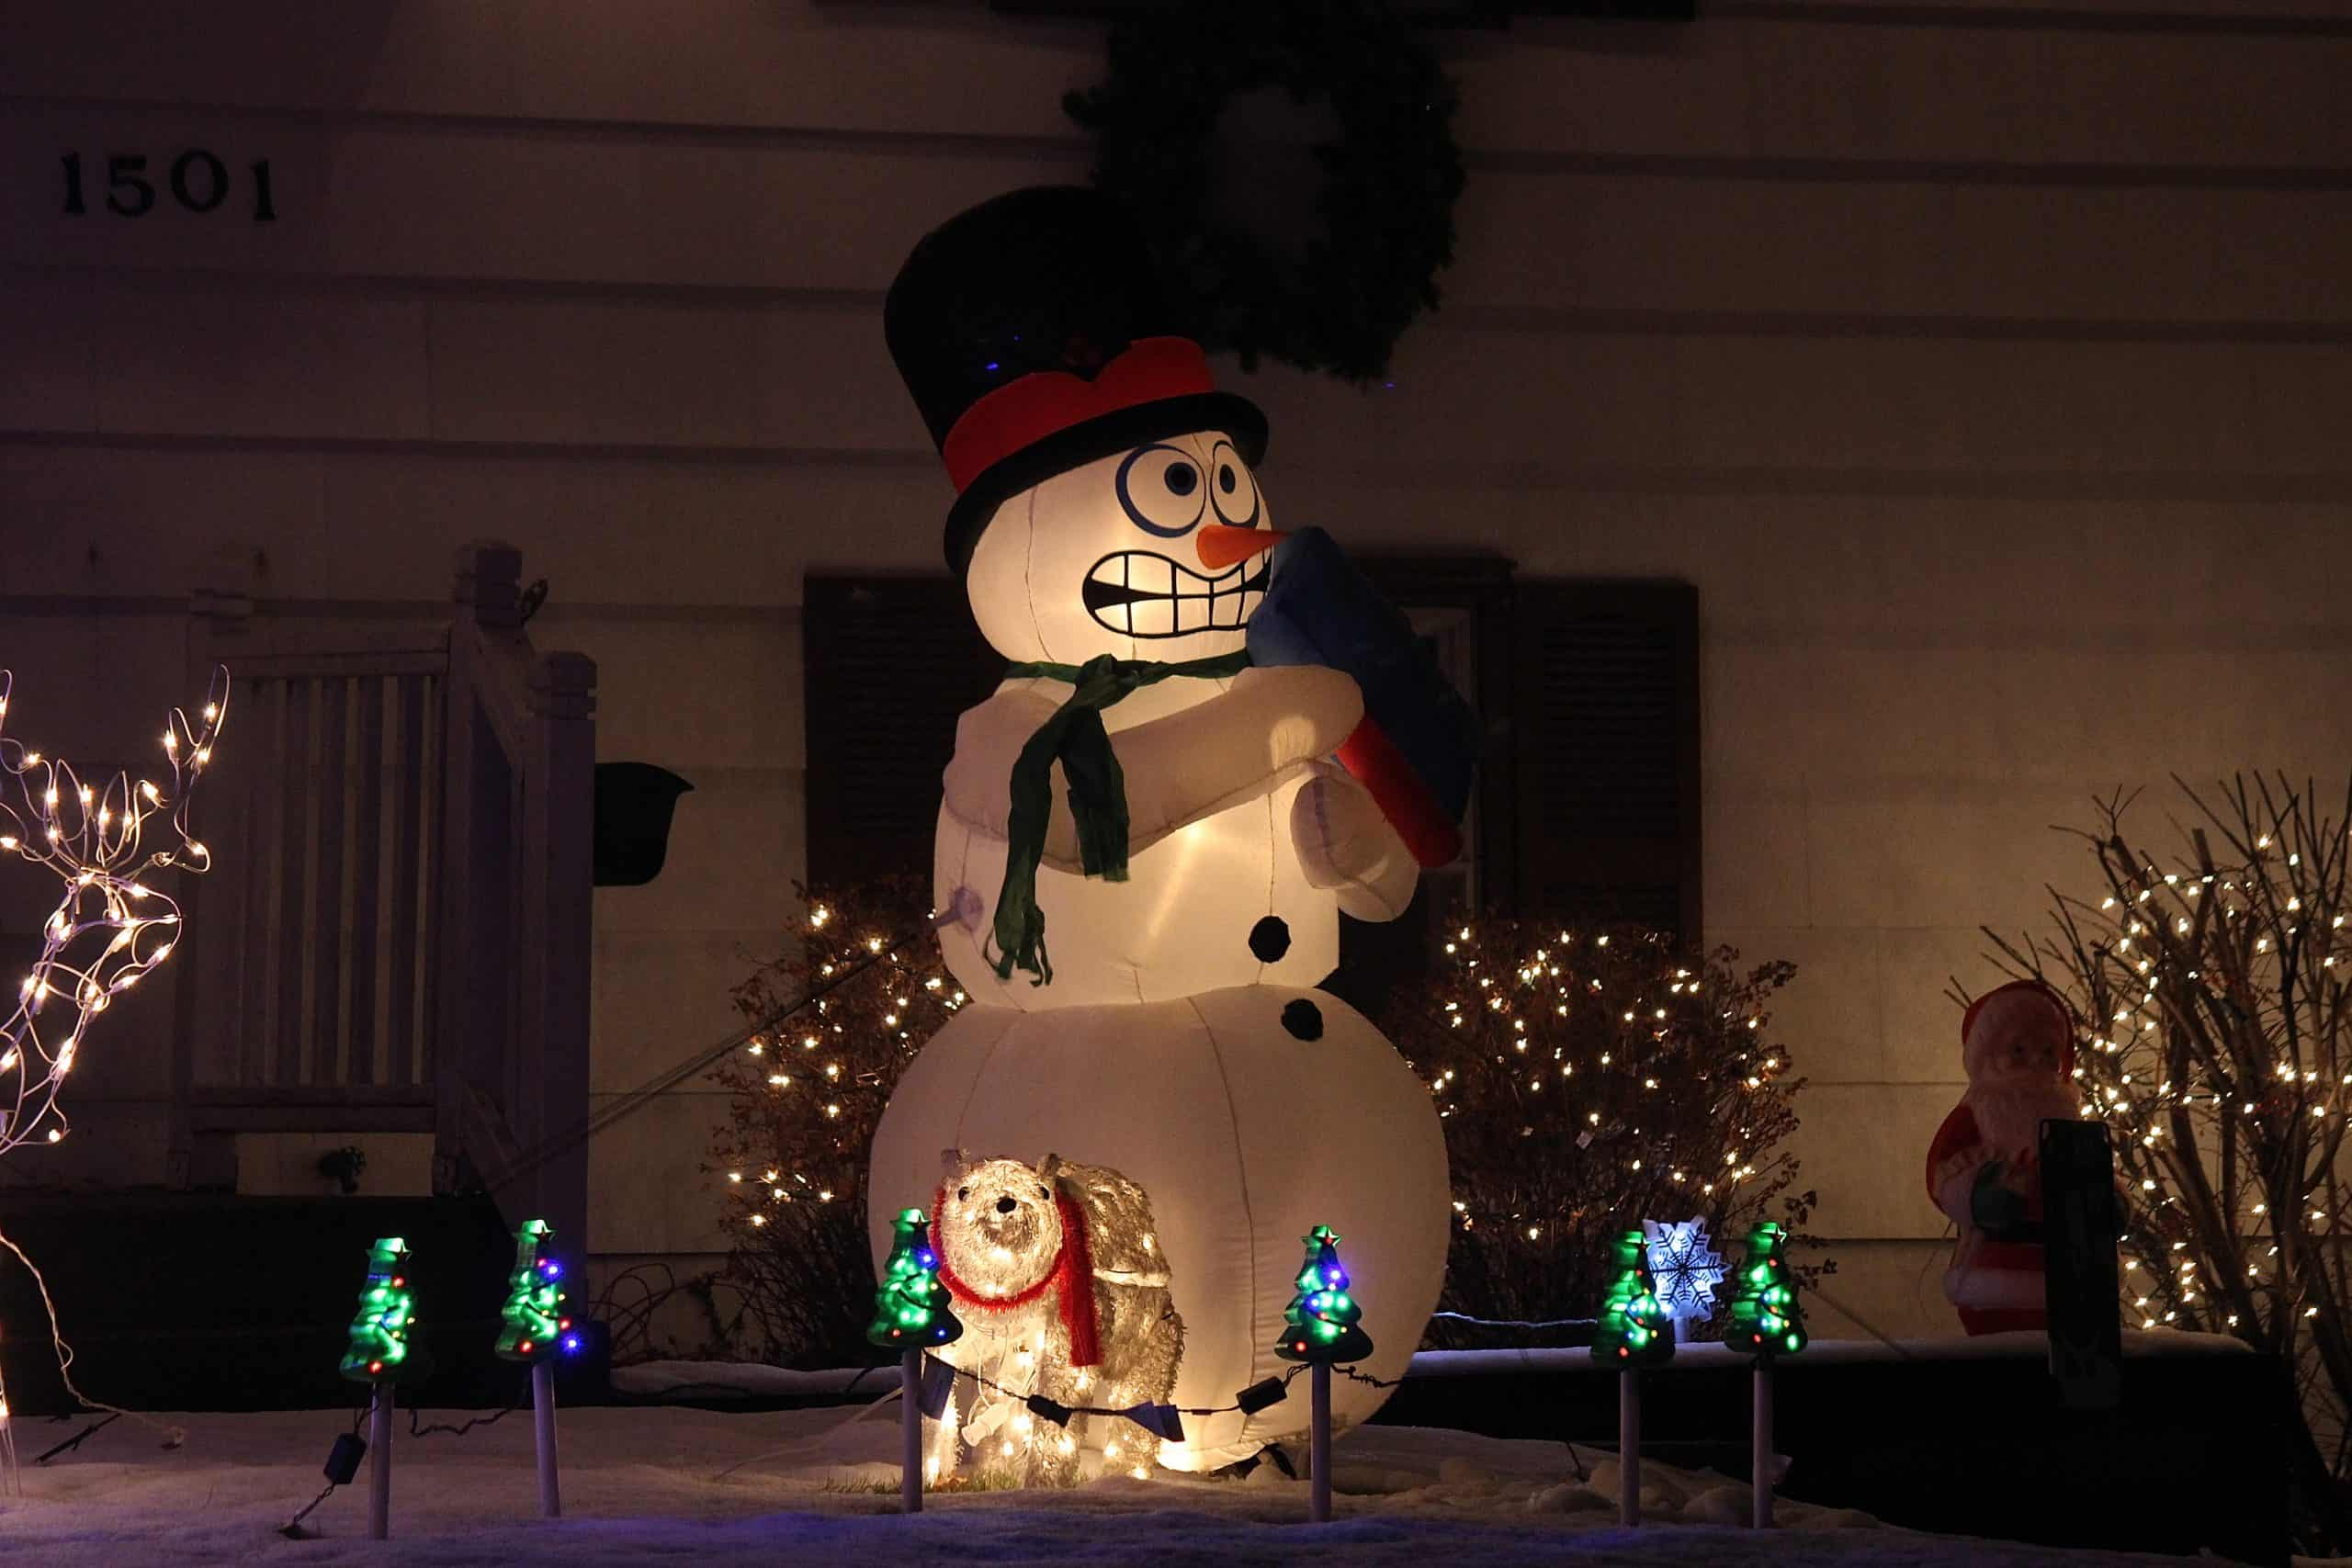 Stressed Snowman,Be Proactive to Reduce Effects of Holiday Stress